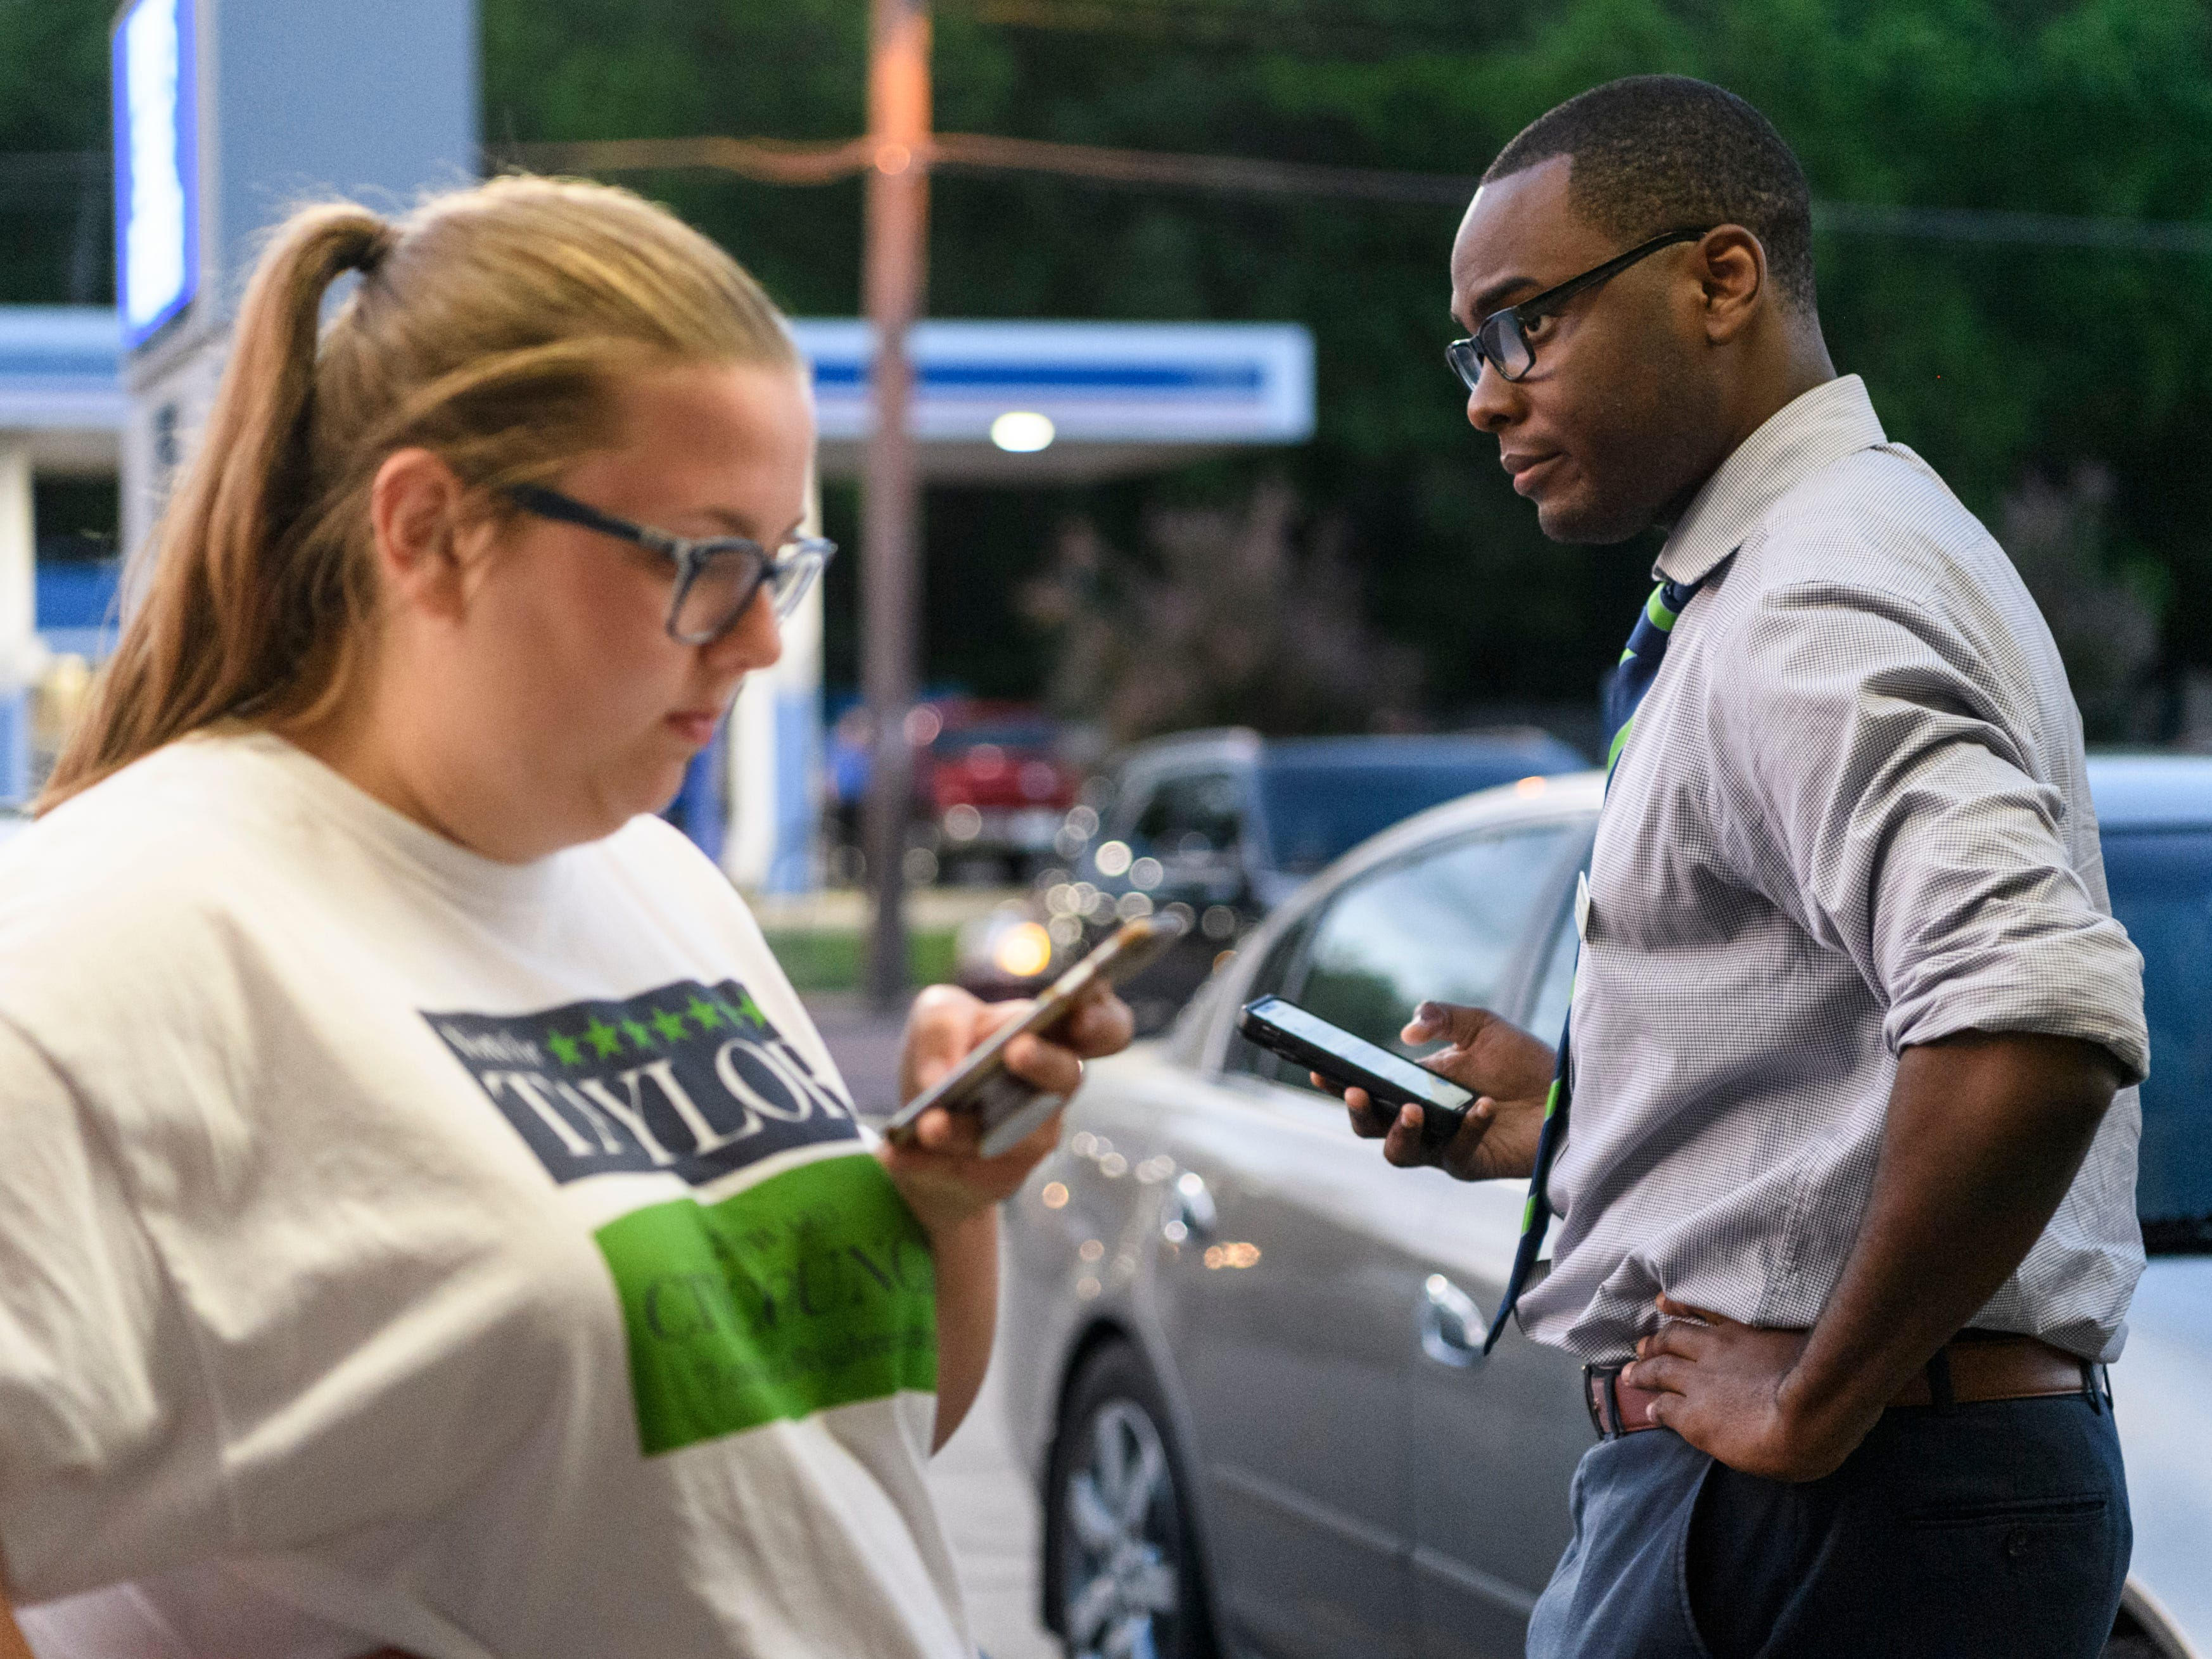 Anna Ardelean, left, and D'Angelo Taylor, right, check for an update on election results for his second ward city council primary race against incumbent Missy Mosby at Spudz-N-Stuff in Evansville, Ind., Tuesday, May 7, 2019. Ardelean, a student studying political science at the University of Southern Indiana, worked as Taylor's campaign field director.